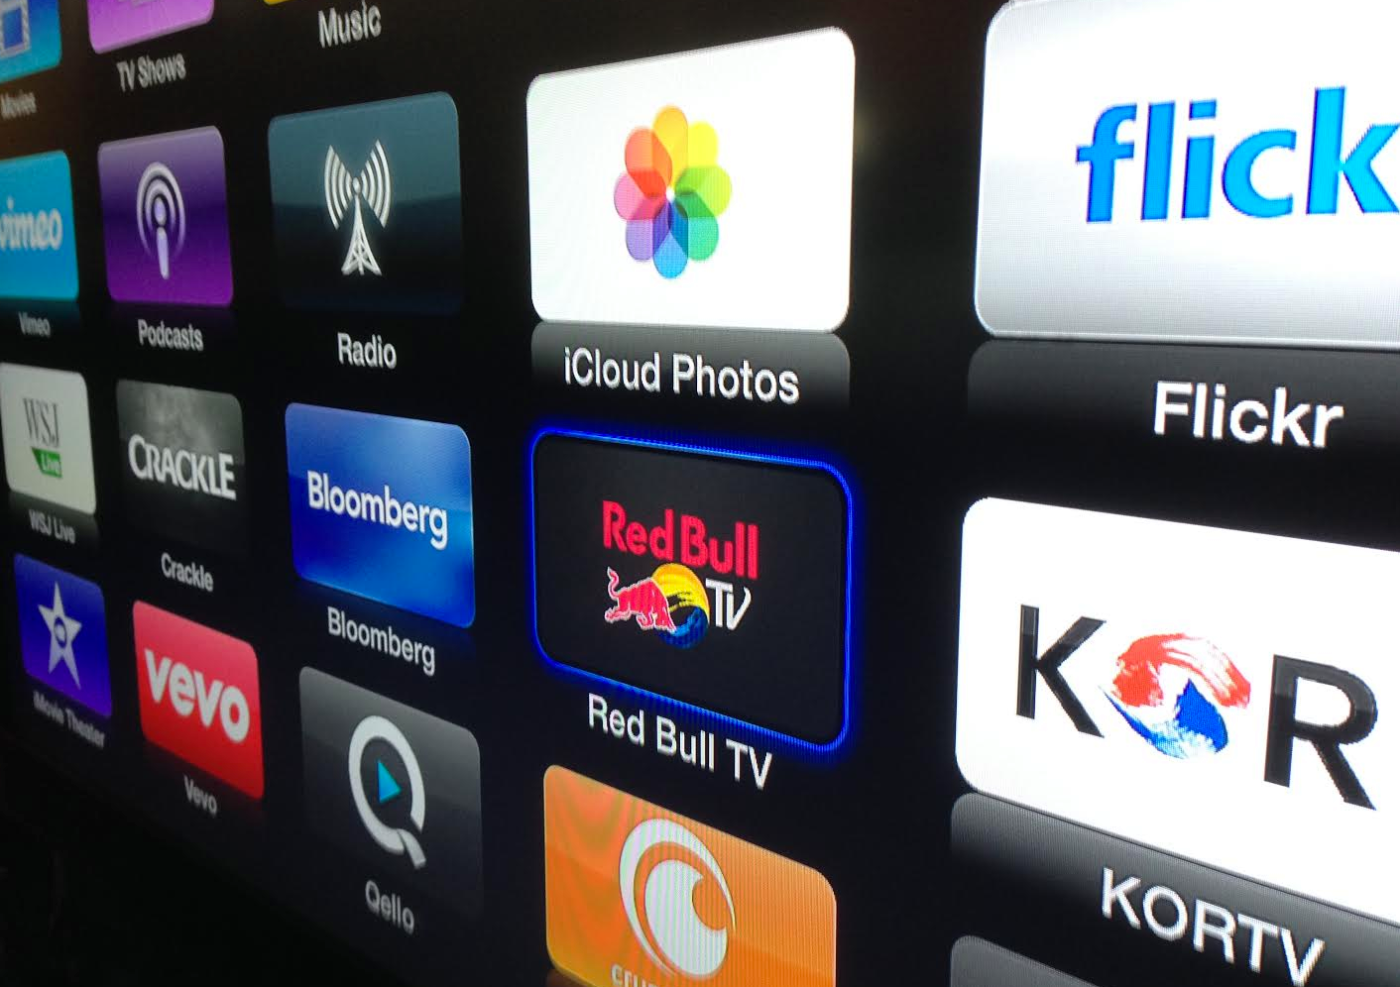 Red Bull channel on the old Apple TV